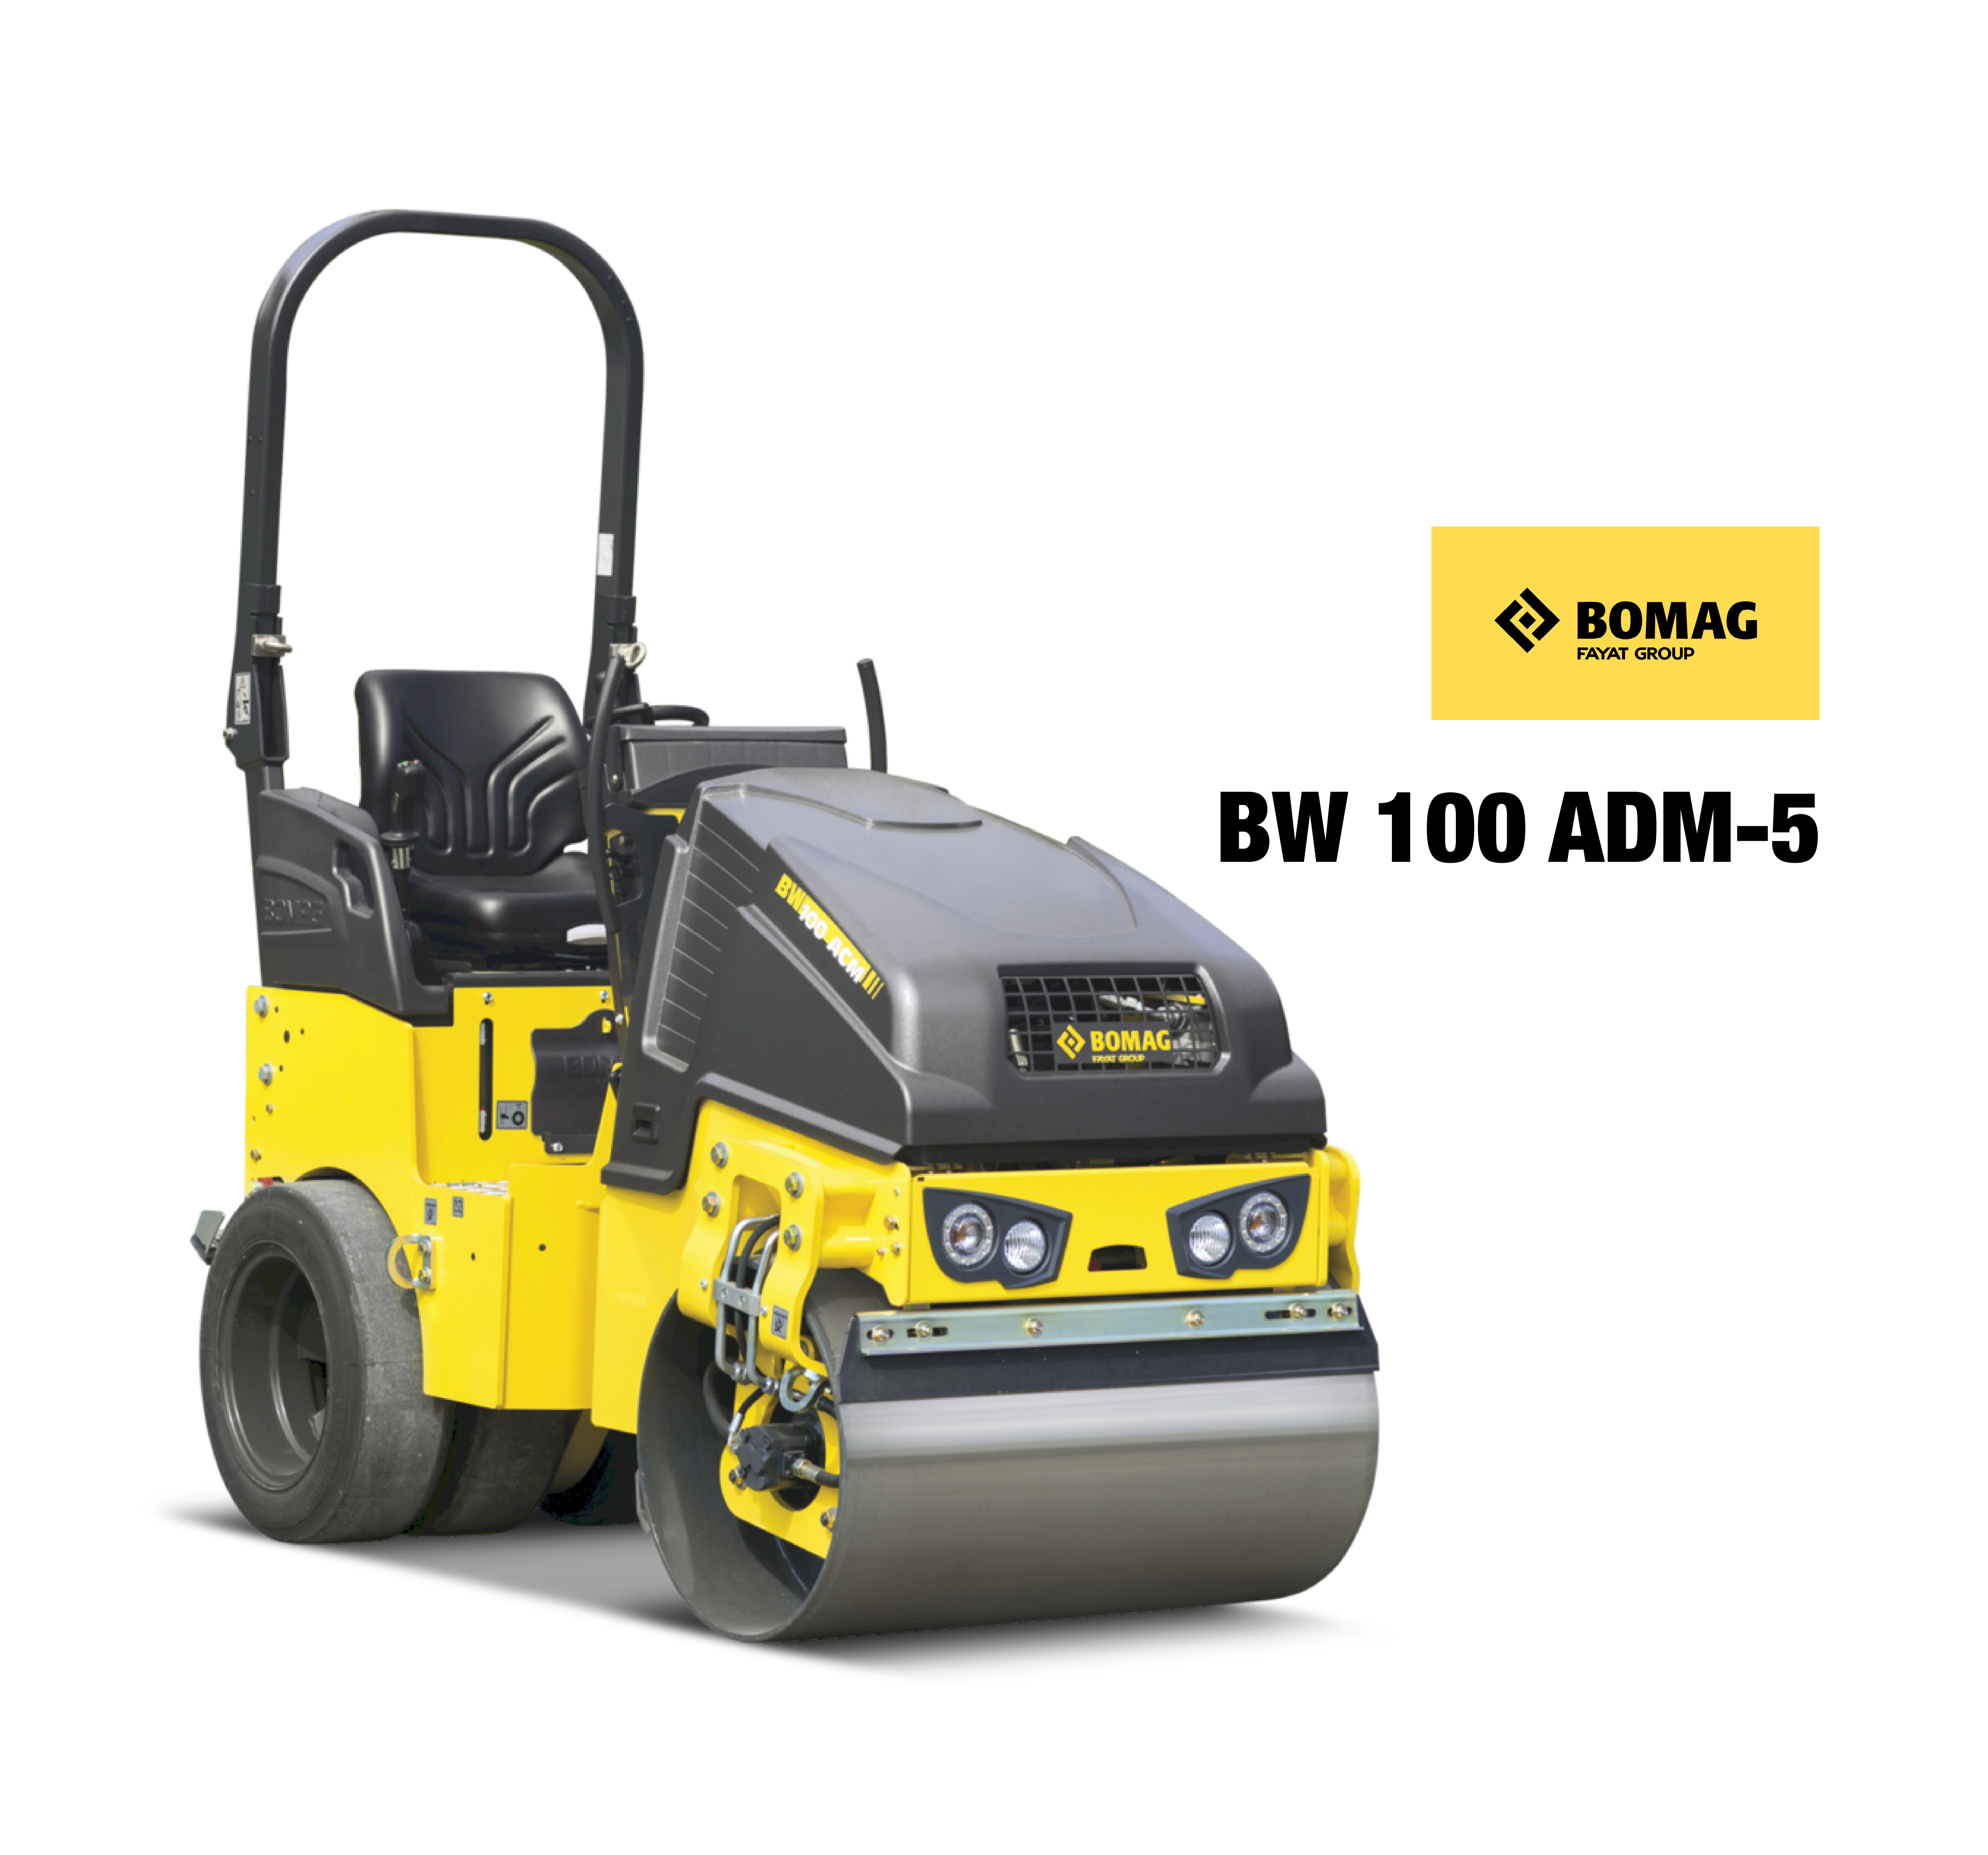 Description: BOMAG offer a comprehensive range of light tandem rollers from  1.5 to 4.5 tonnes, with four operating widths from 800mm to 1380mm.